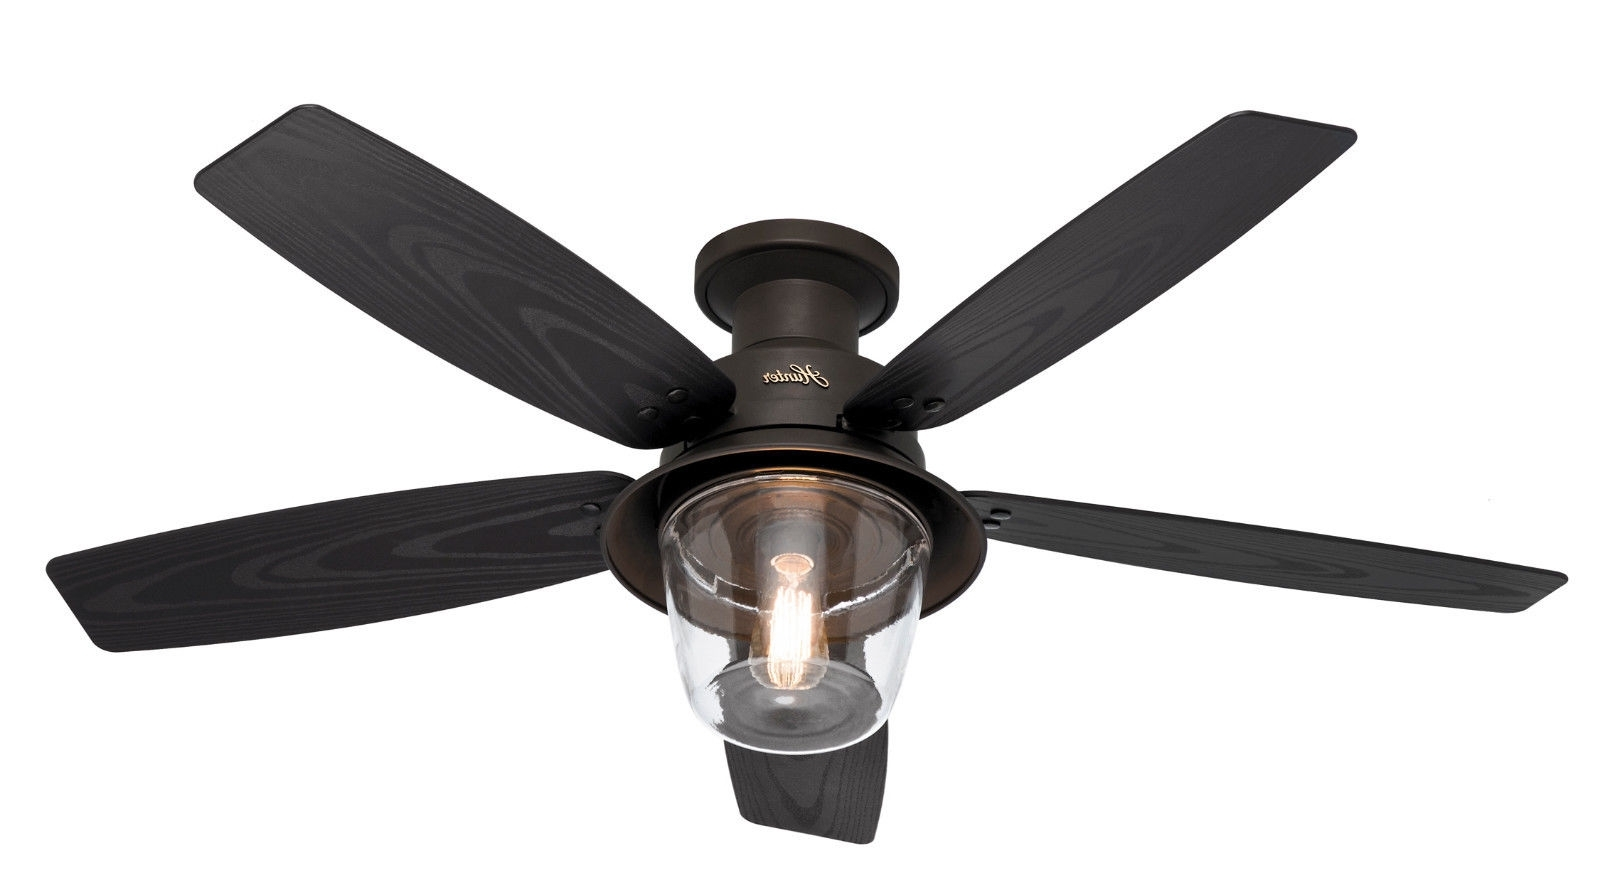 Most Up To Date Ceiling: Astounding Small Outdoor Ceiling Fan Hunter Outdoor Ceiling Throughout Mini Outdoor Ceiling Fans With Lights (View 2 of 20)